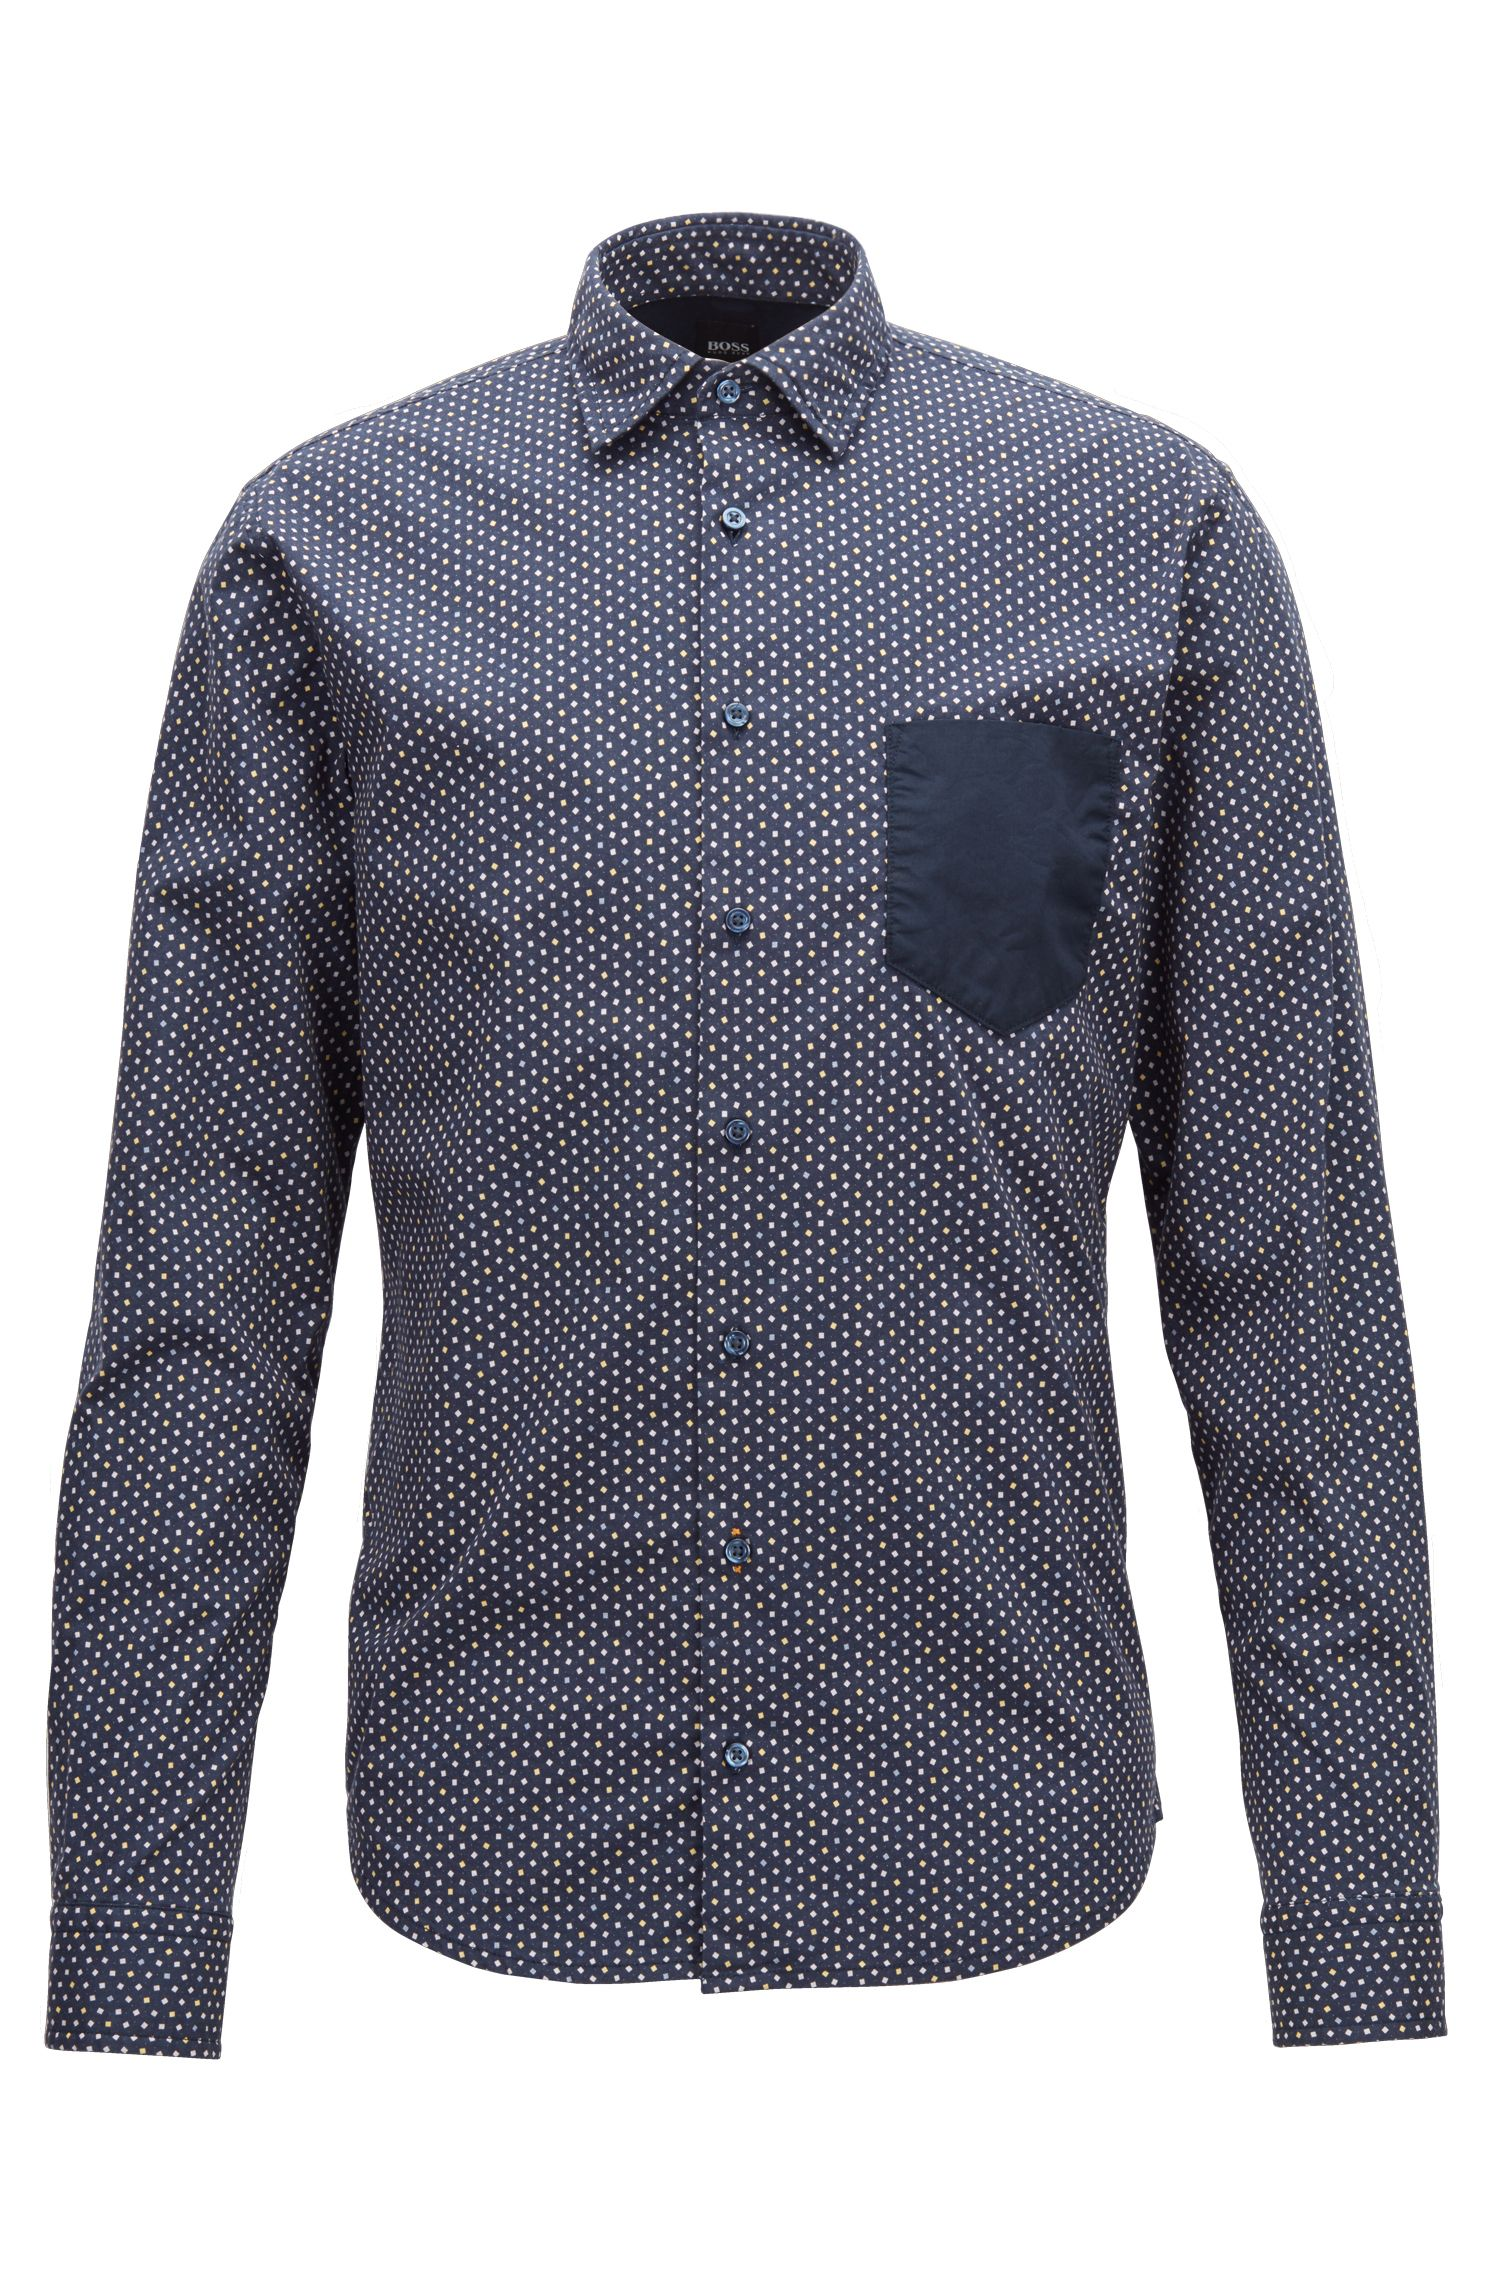 Hugo Boss - Slim-fit shirt in stretch cotton with mini-geometric print - 1